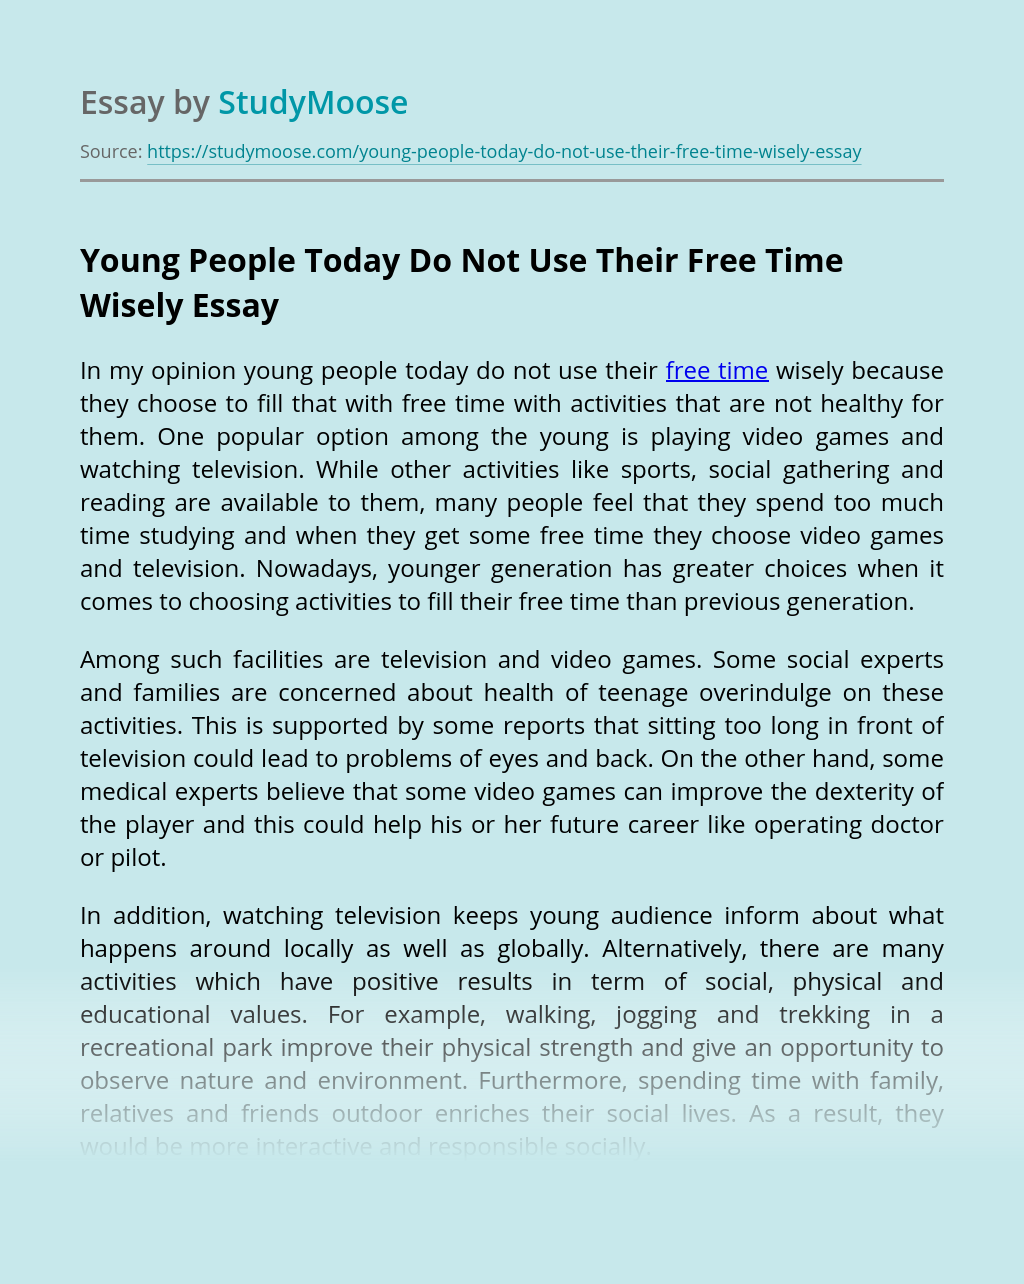 Young People Today Do Not Use Their Free Time Wisely